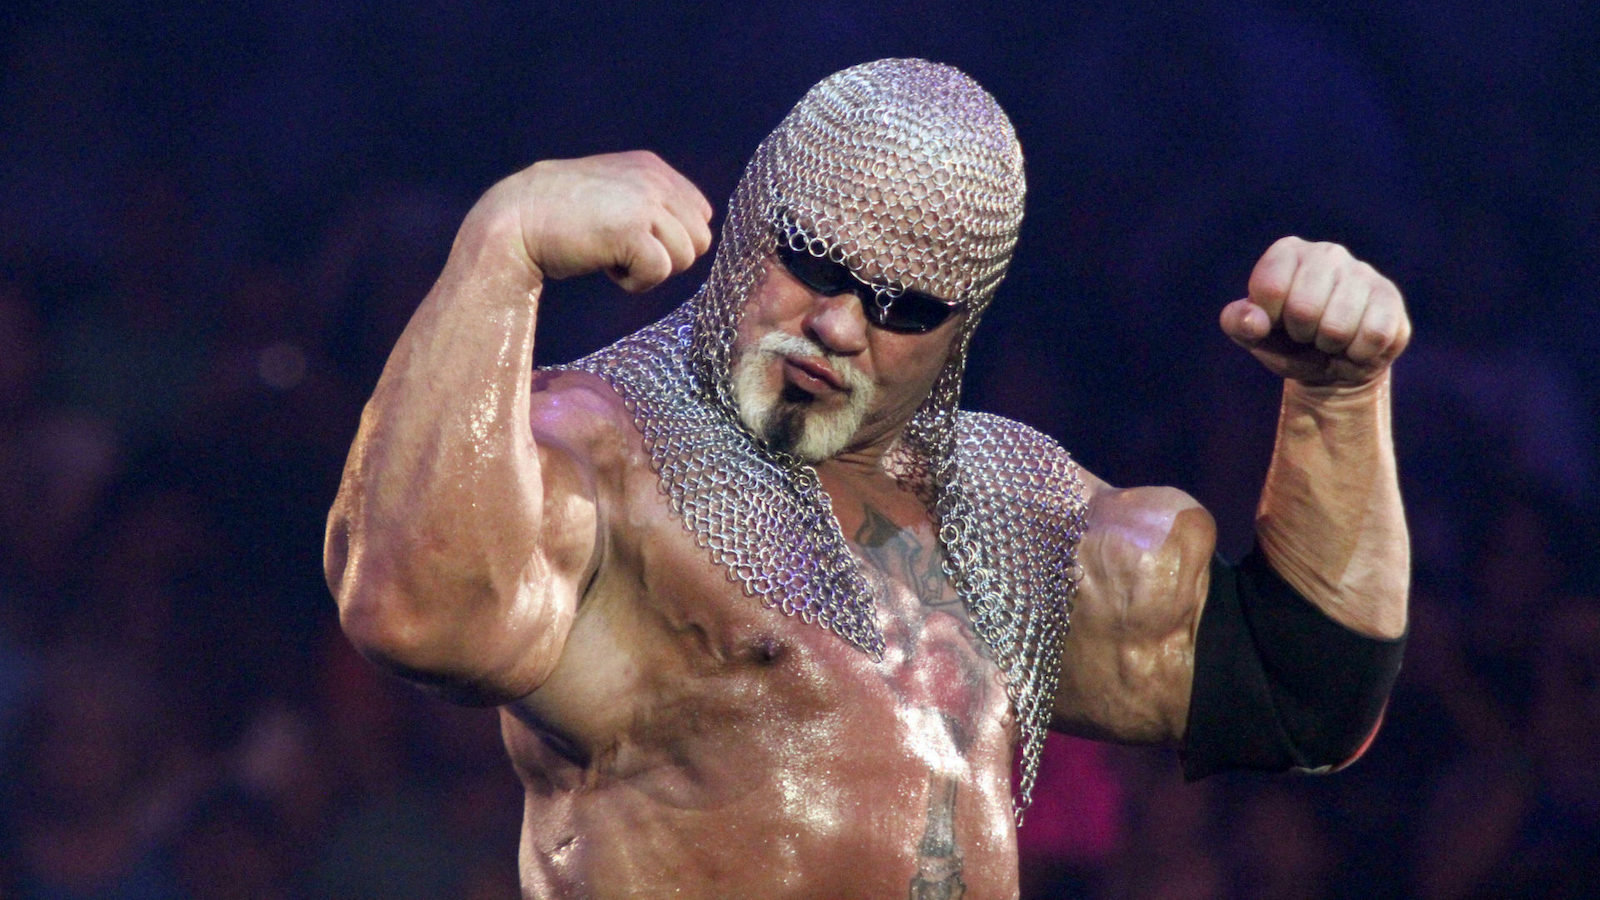 Scott Steiner Appears at Indie Show, Talks About His ...